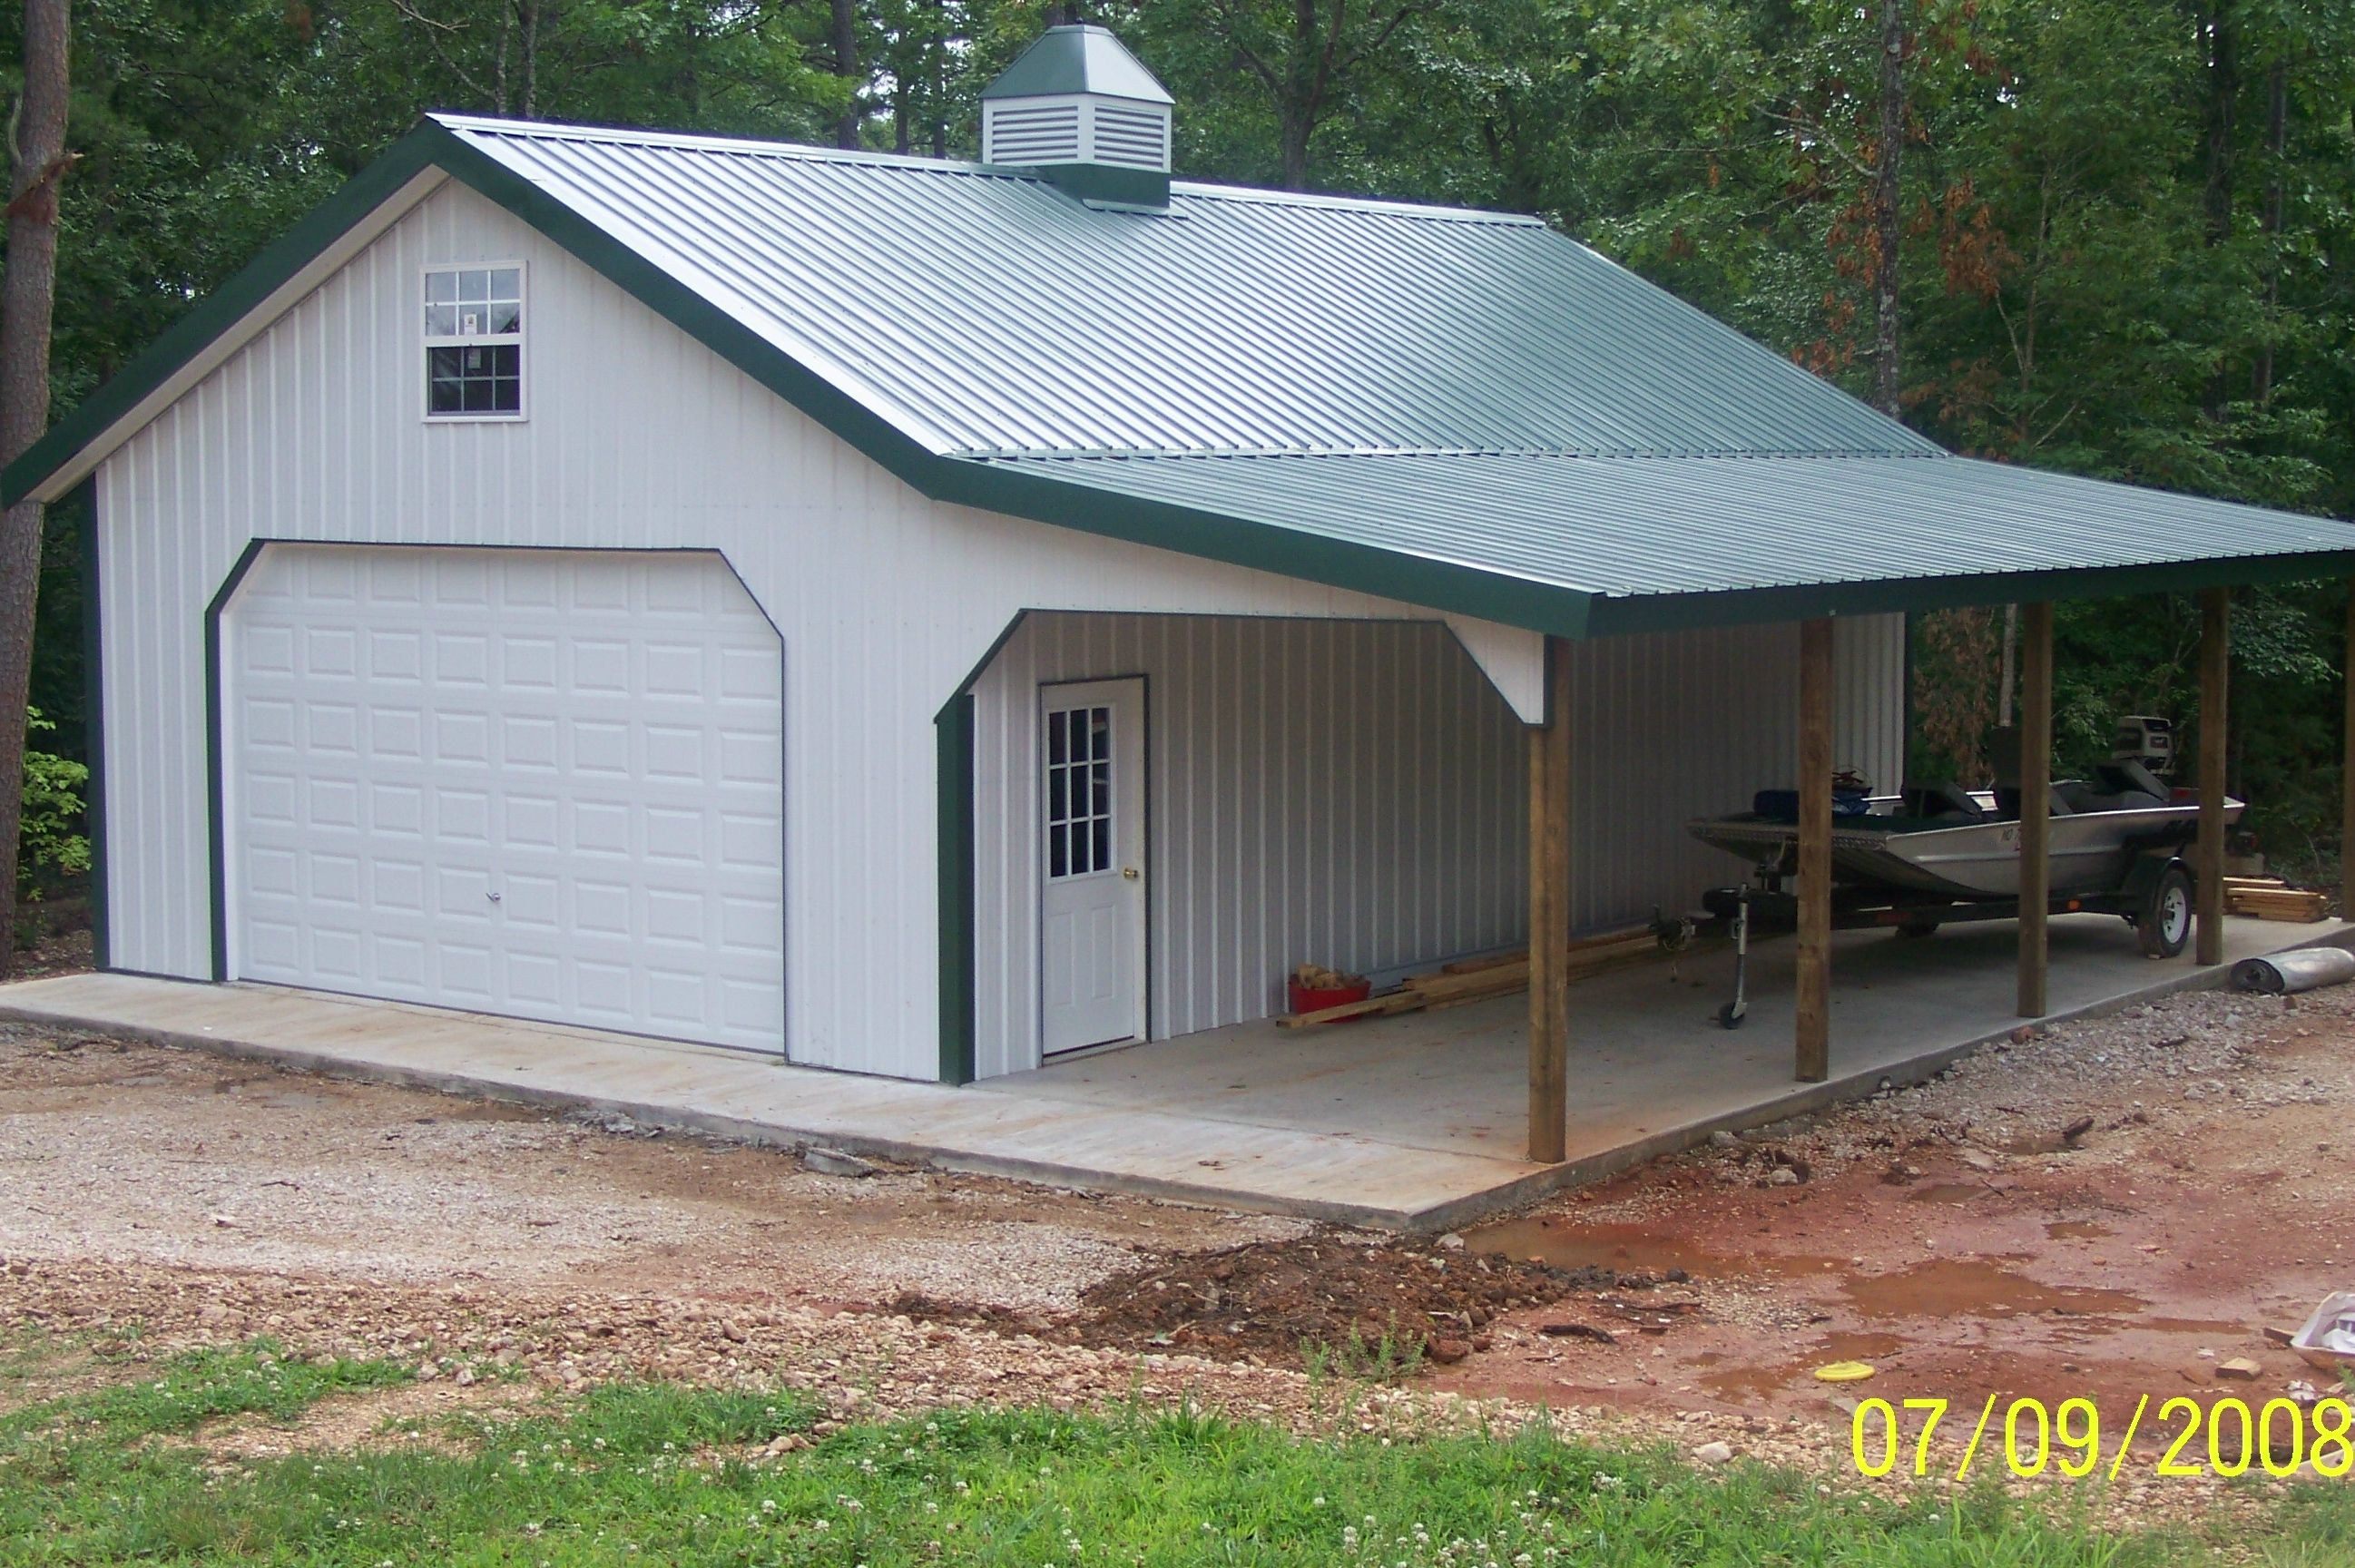 Garage plans 58 garage plans and free diy building for Free garage plans online